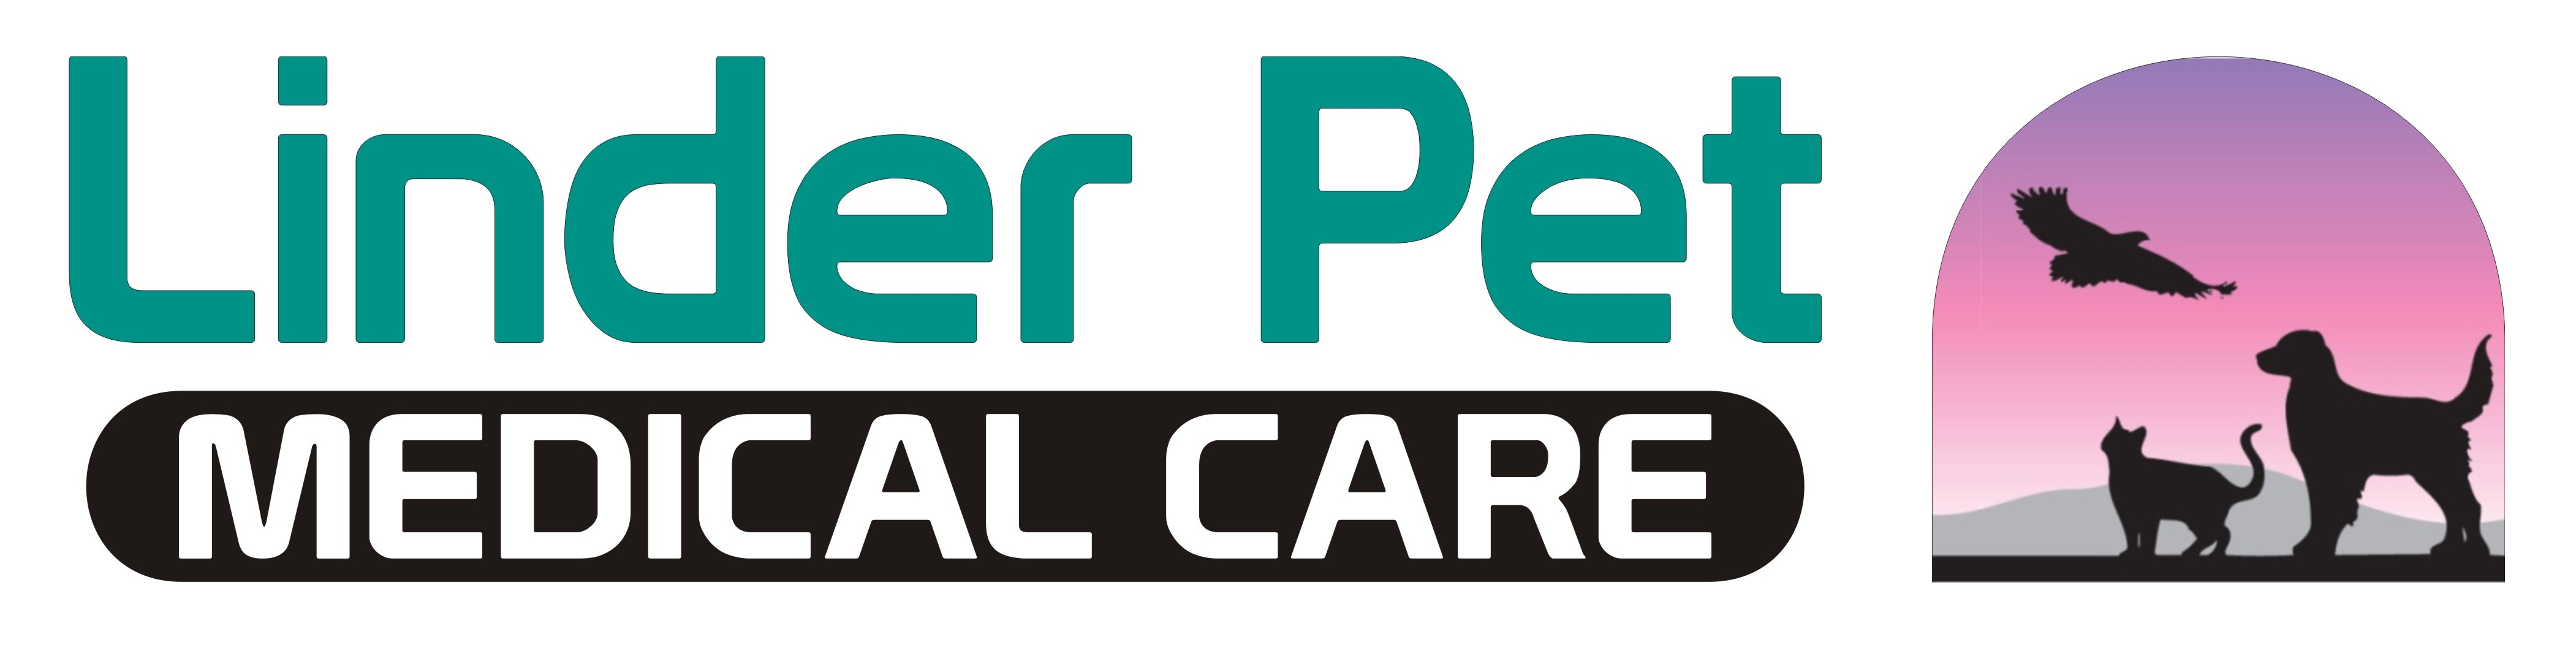 Linder Pet Medical Care